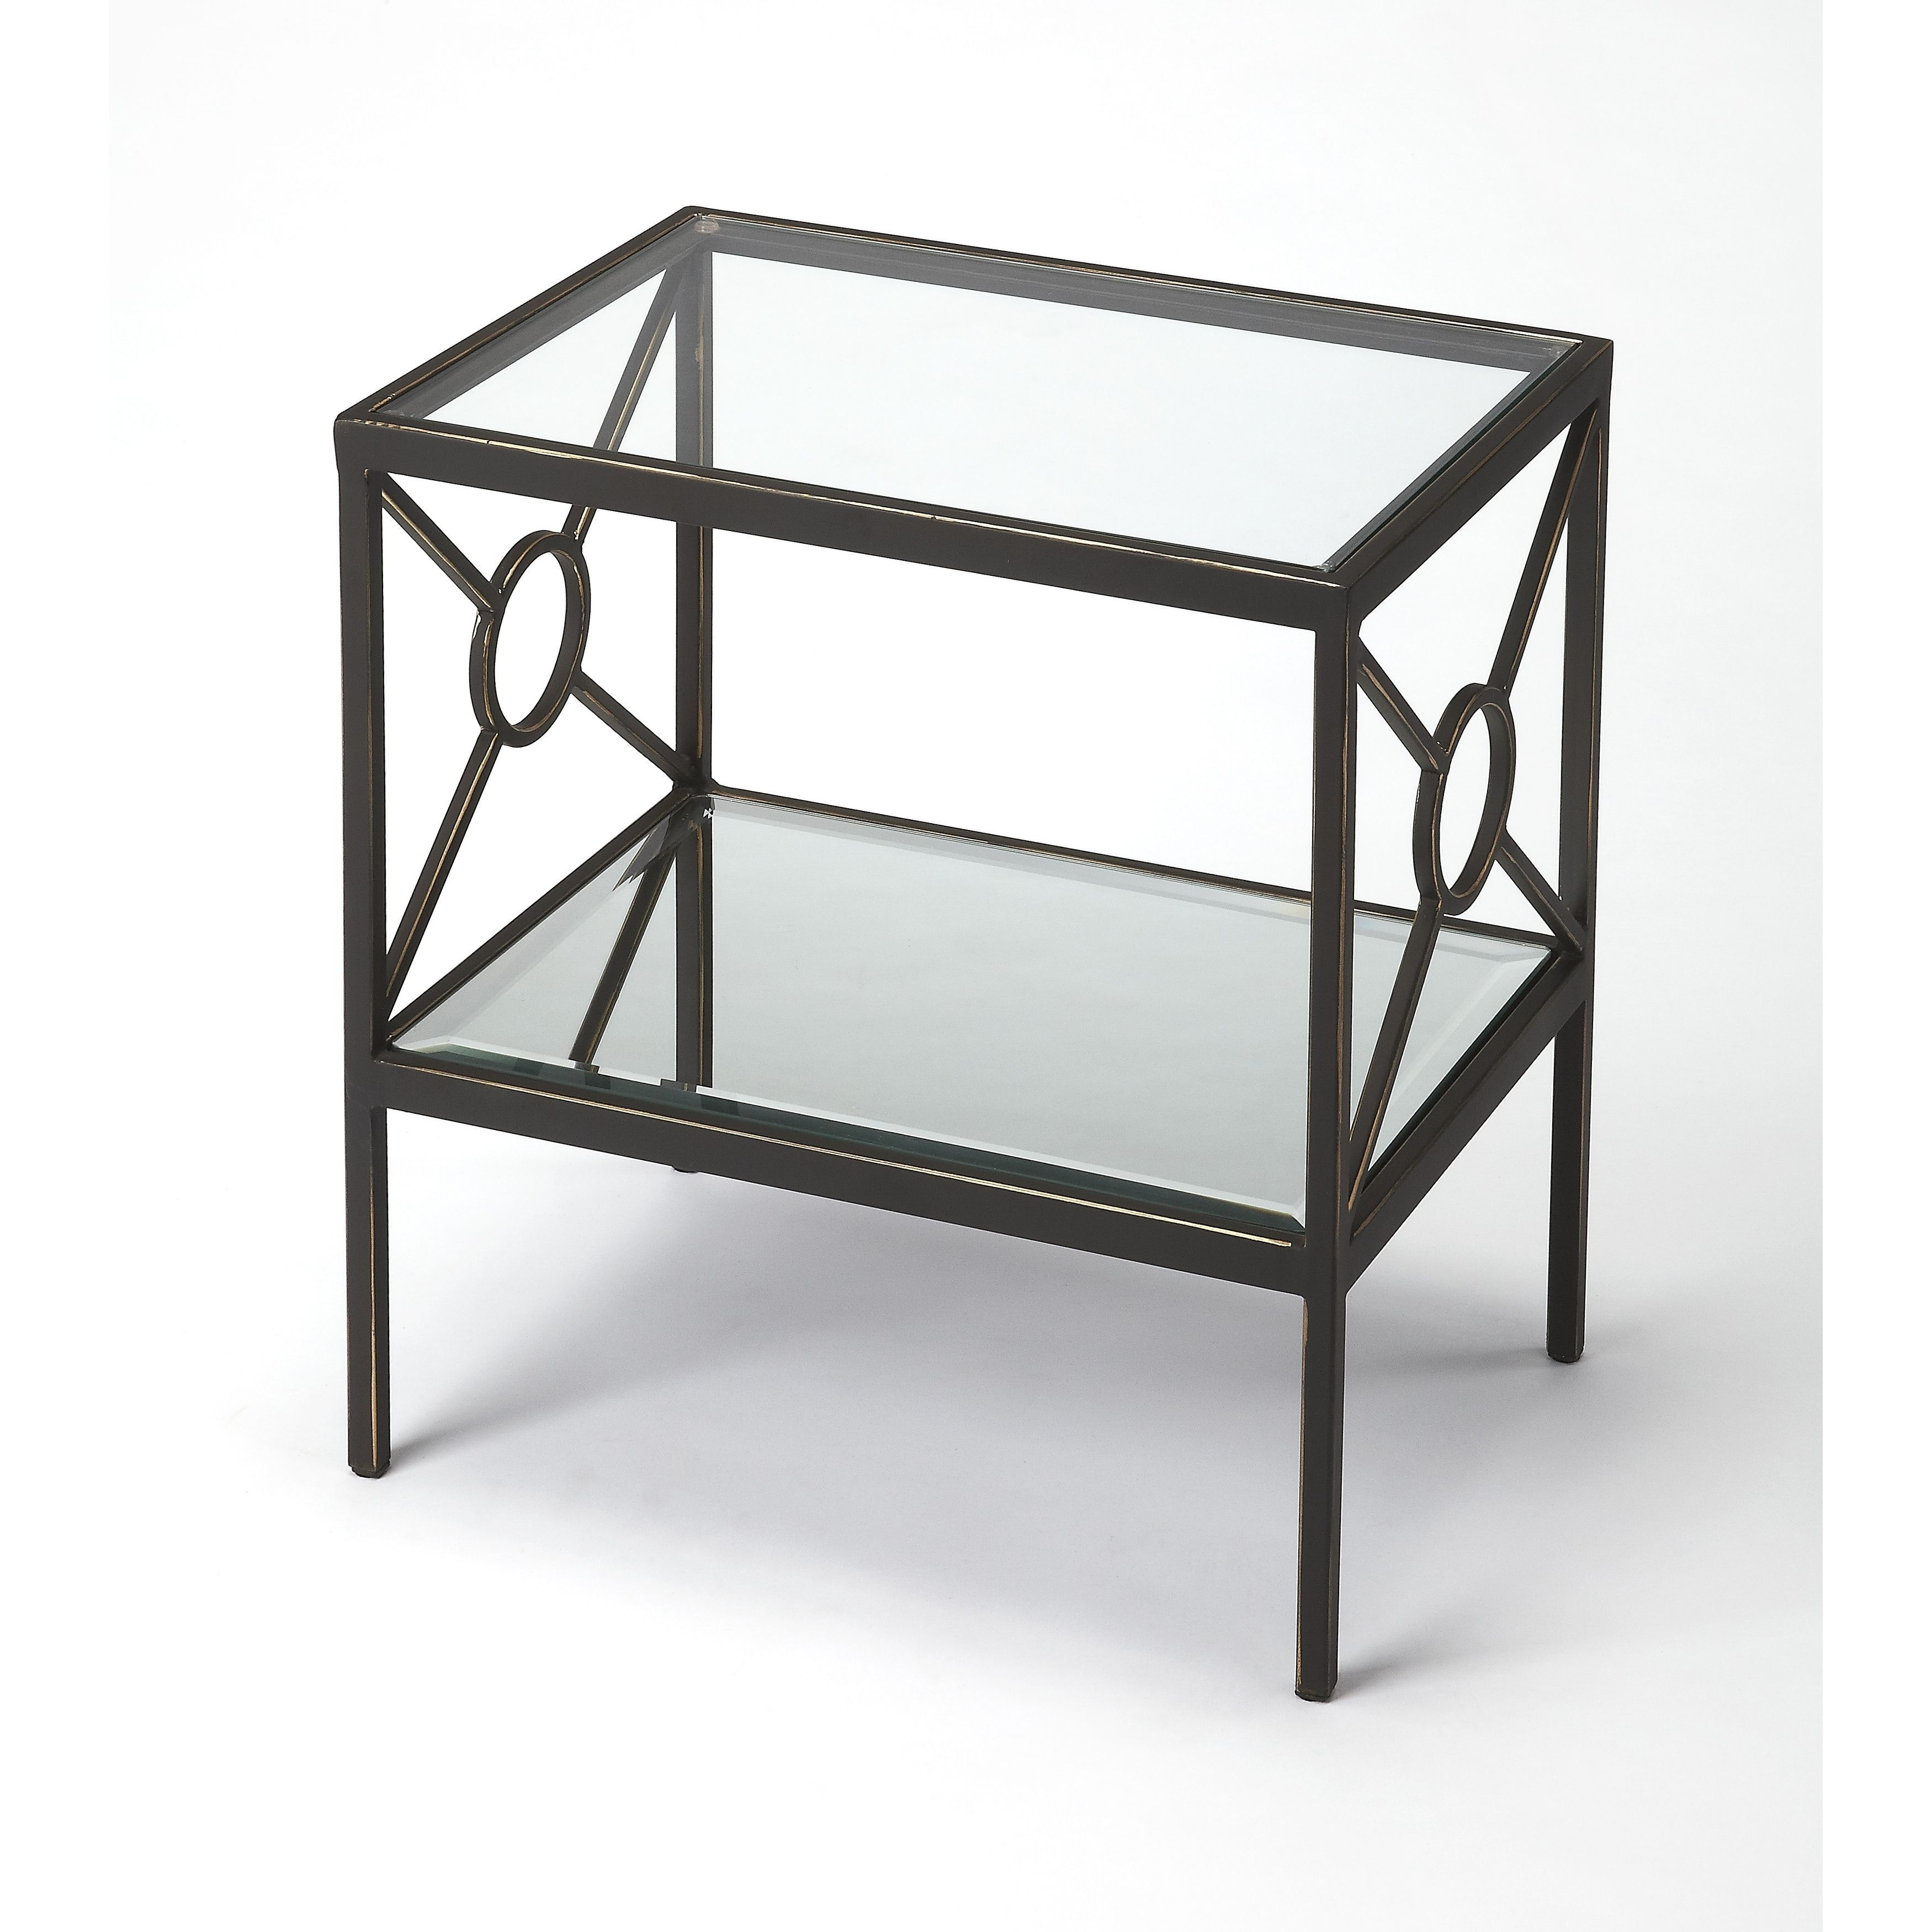 black mirror and zef venetian cheap mirrored antique with round small top wood ideas uk tables side tablesmirrored azure glass jam henzler inspirational mesmerizing bassett end gannon coffee table